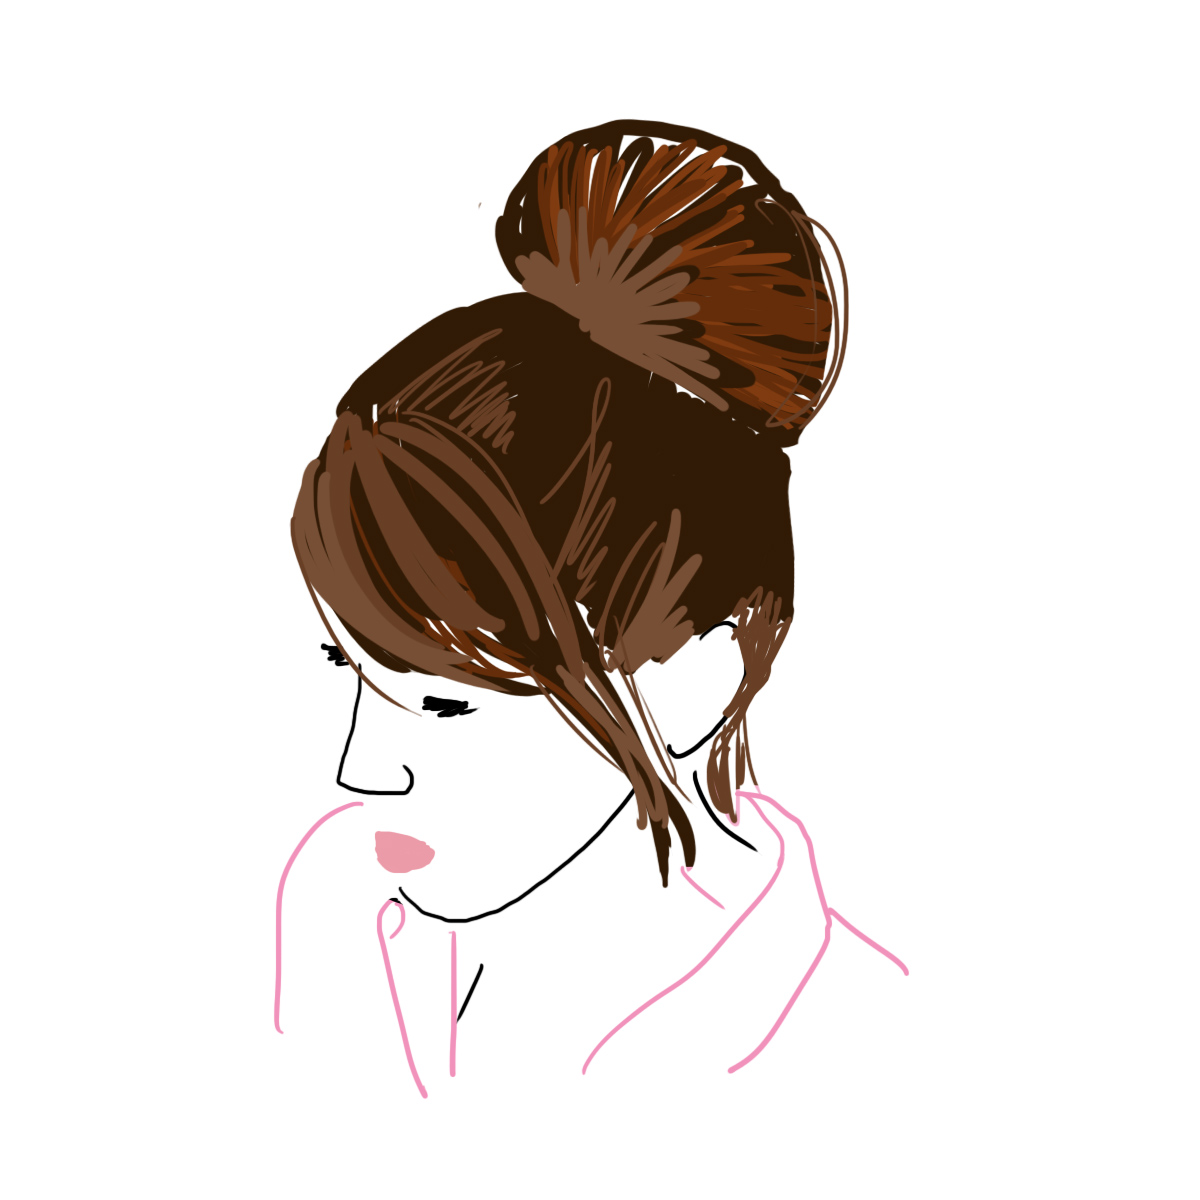 Illustration of a woman with a bun